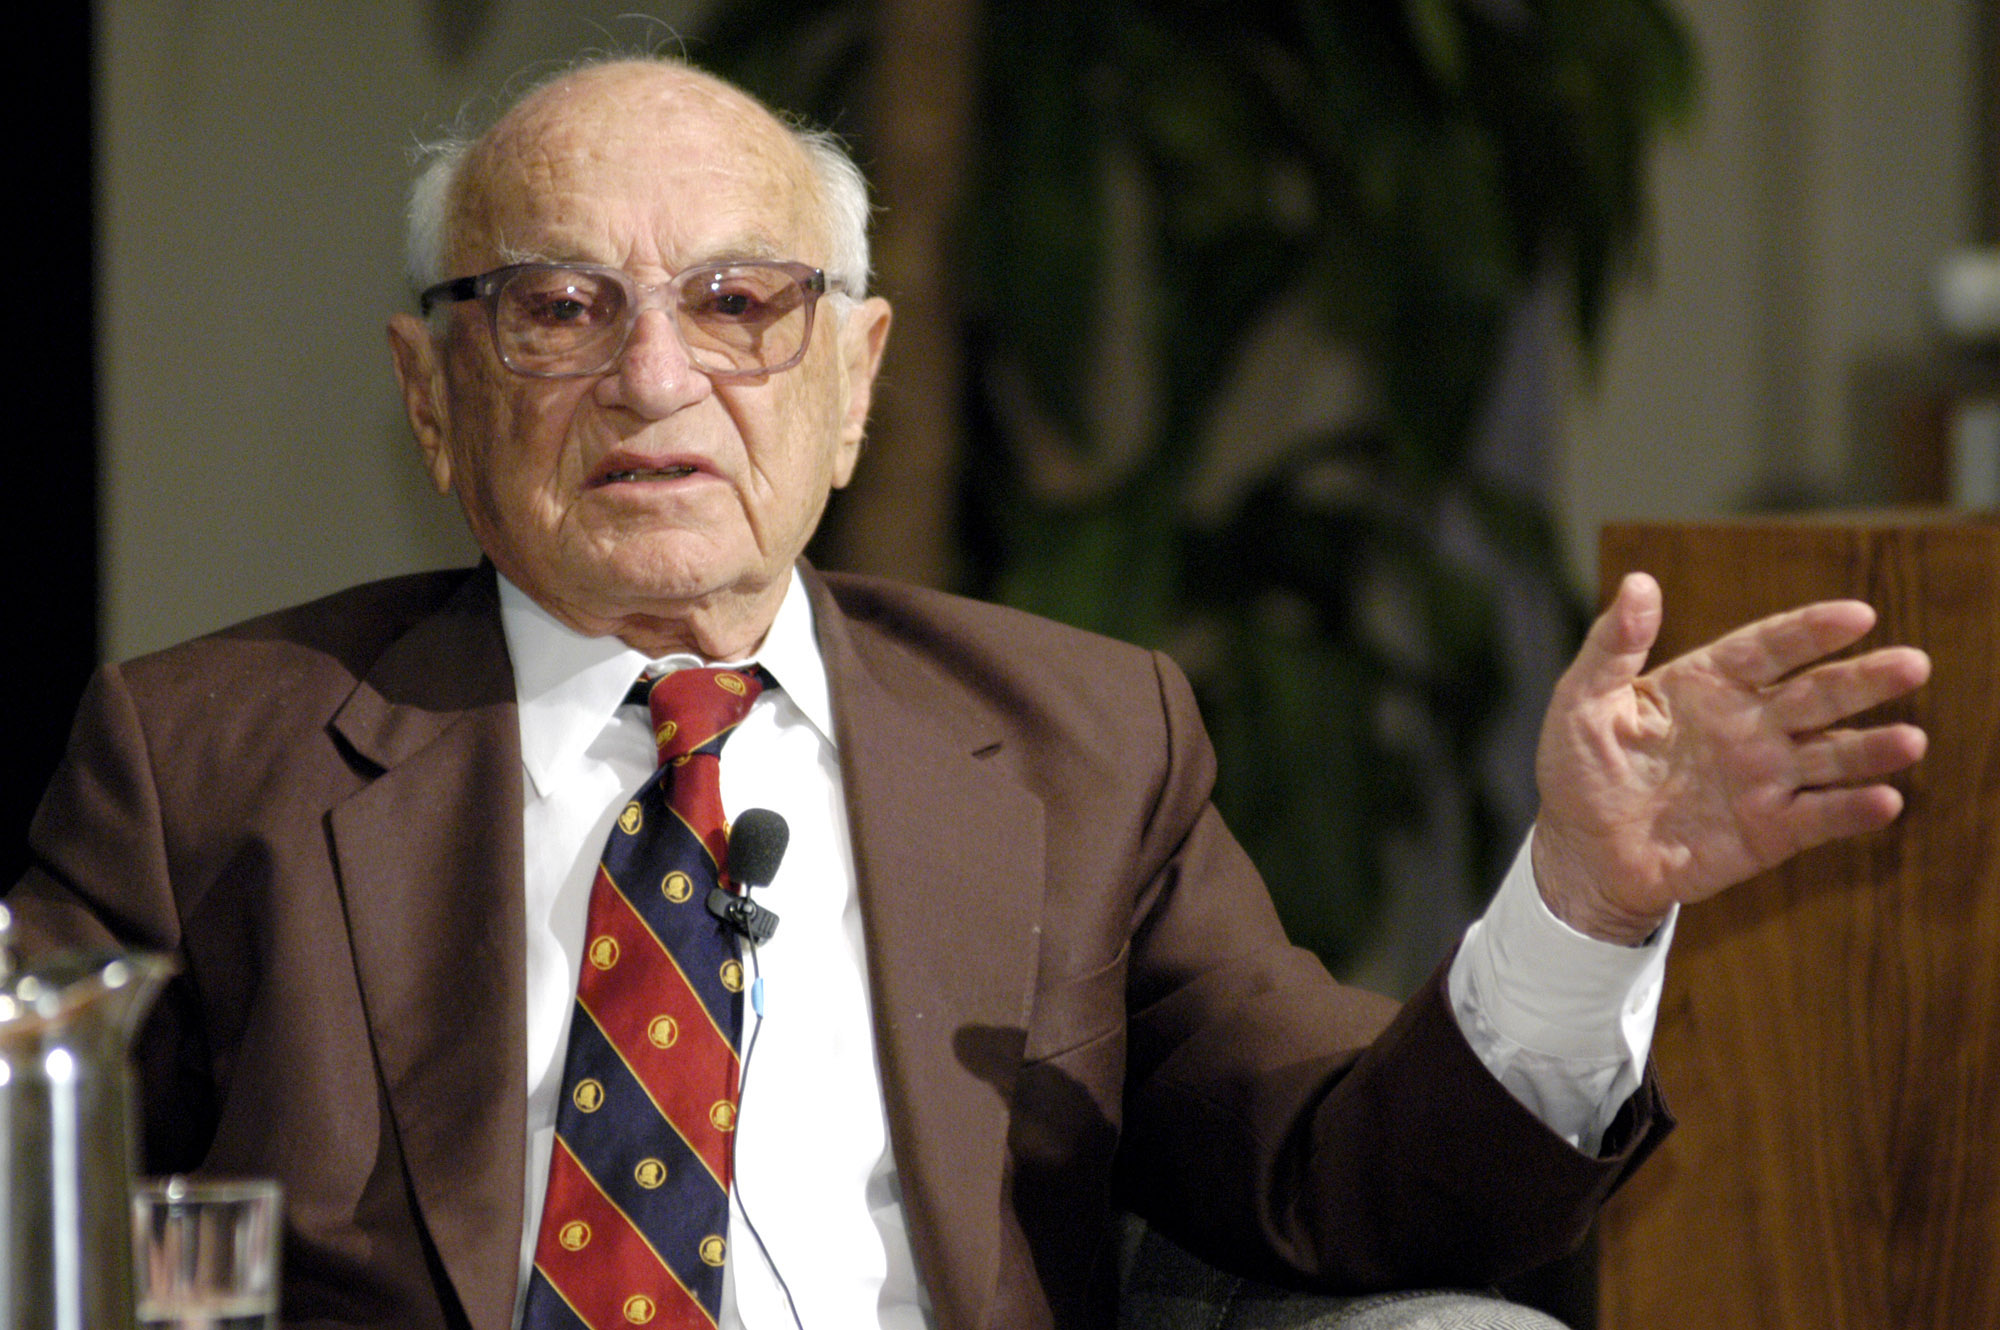 milton friedman essays milton friedman essays does anyone here know who milton friedman open technology center milton friedman on